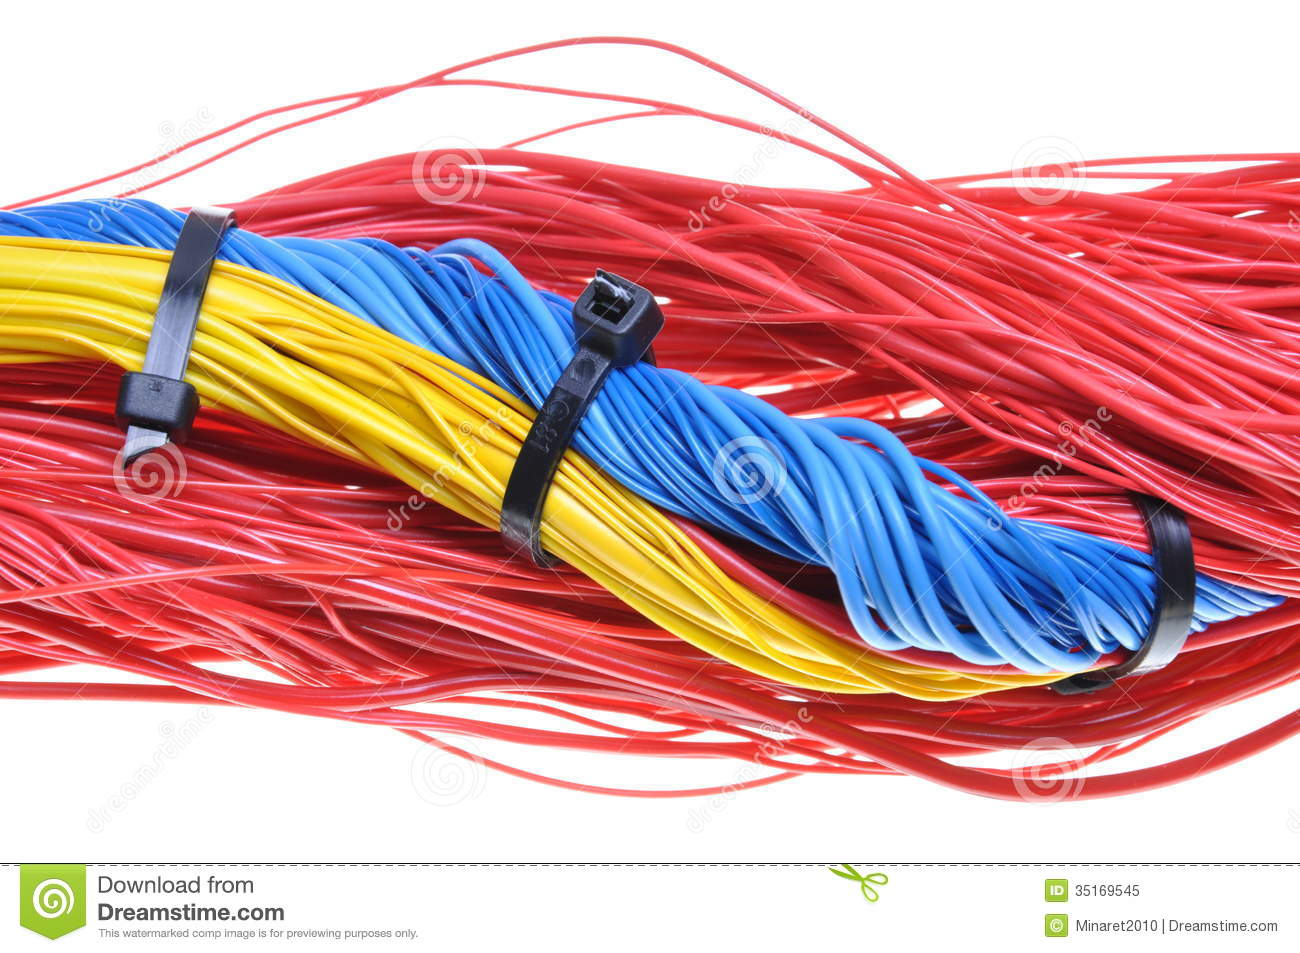 Fiber Cable Clip Art : Cable wire harness clip art get free image about